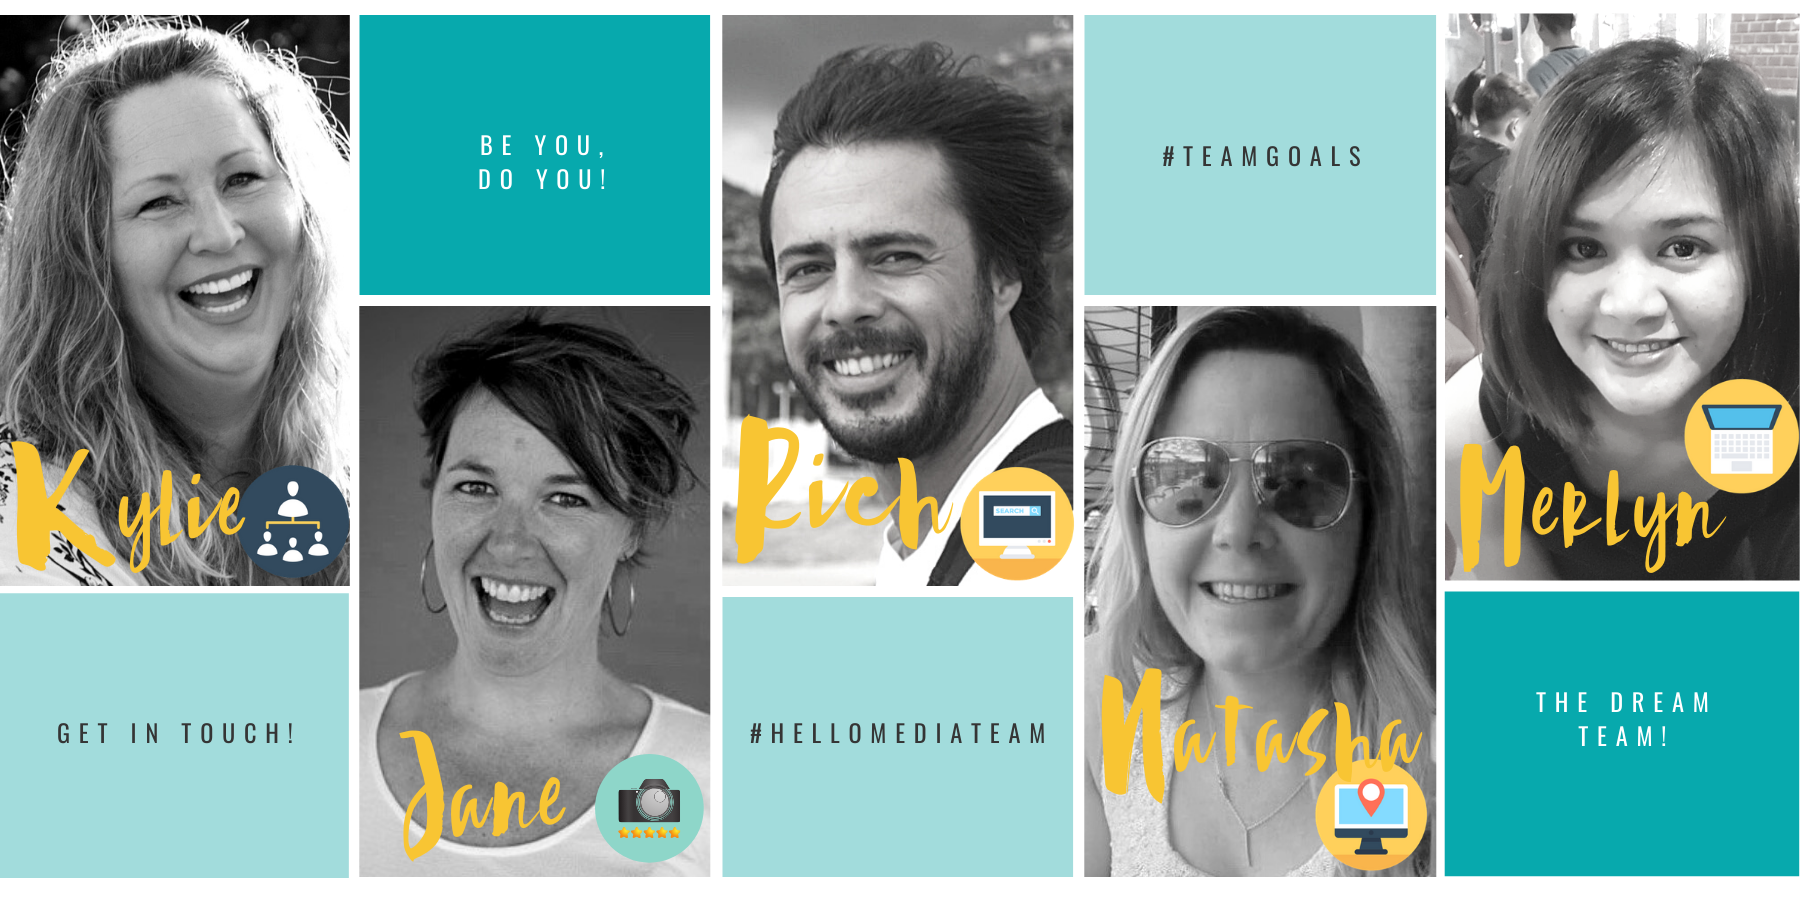 Meet the Hello Media Team who work behind the scenes; wix wordpress & shopify websites, marketing assistant VA, videographer, photographer